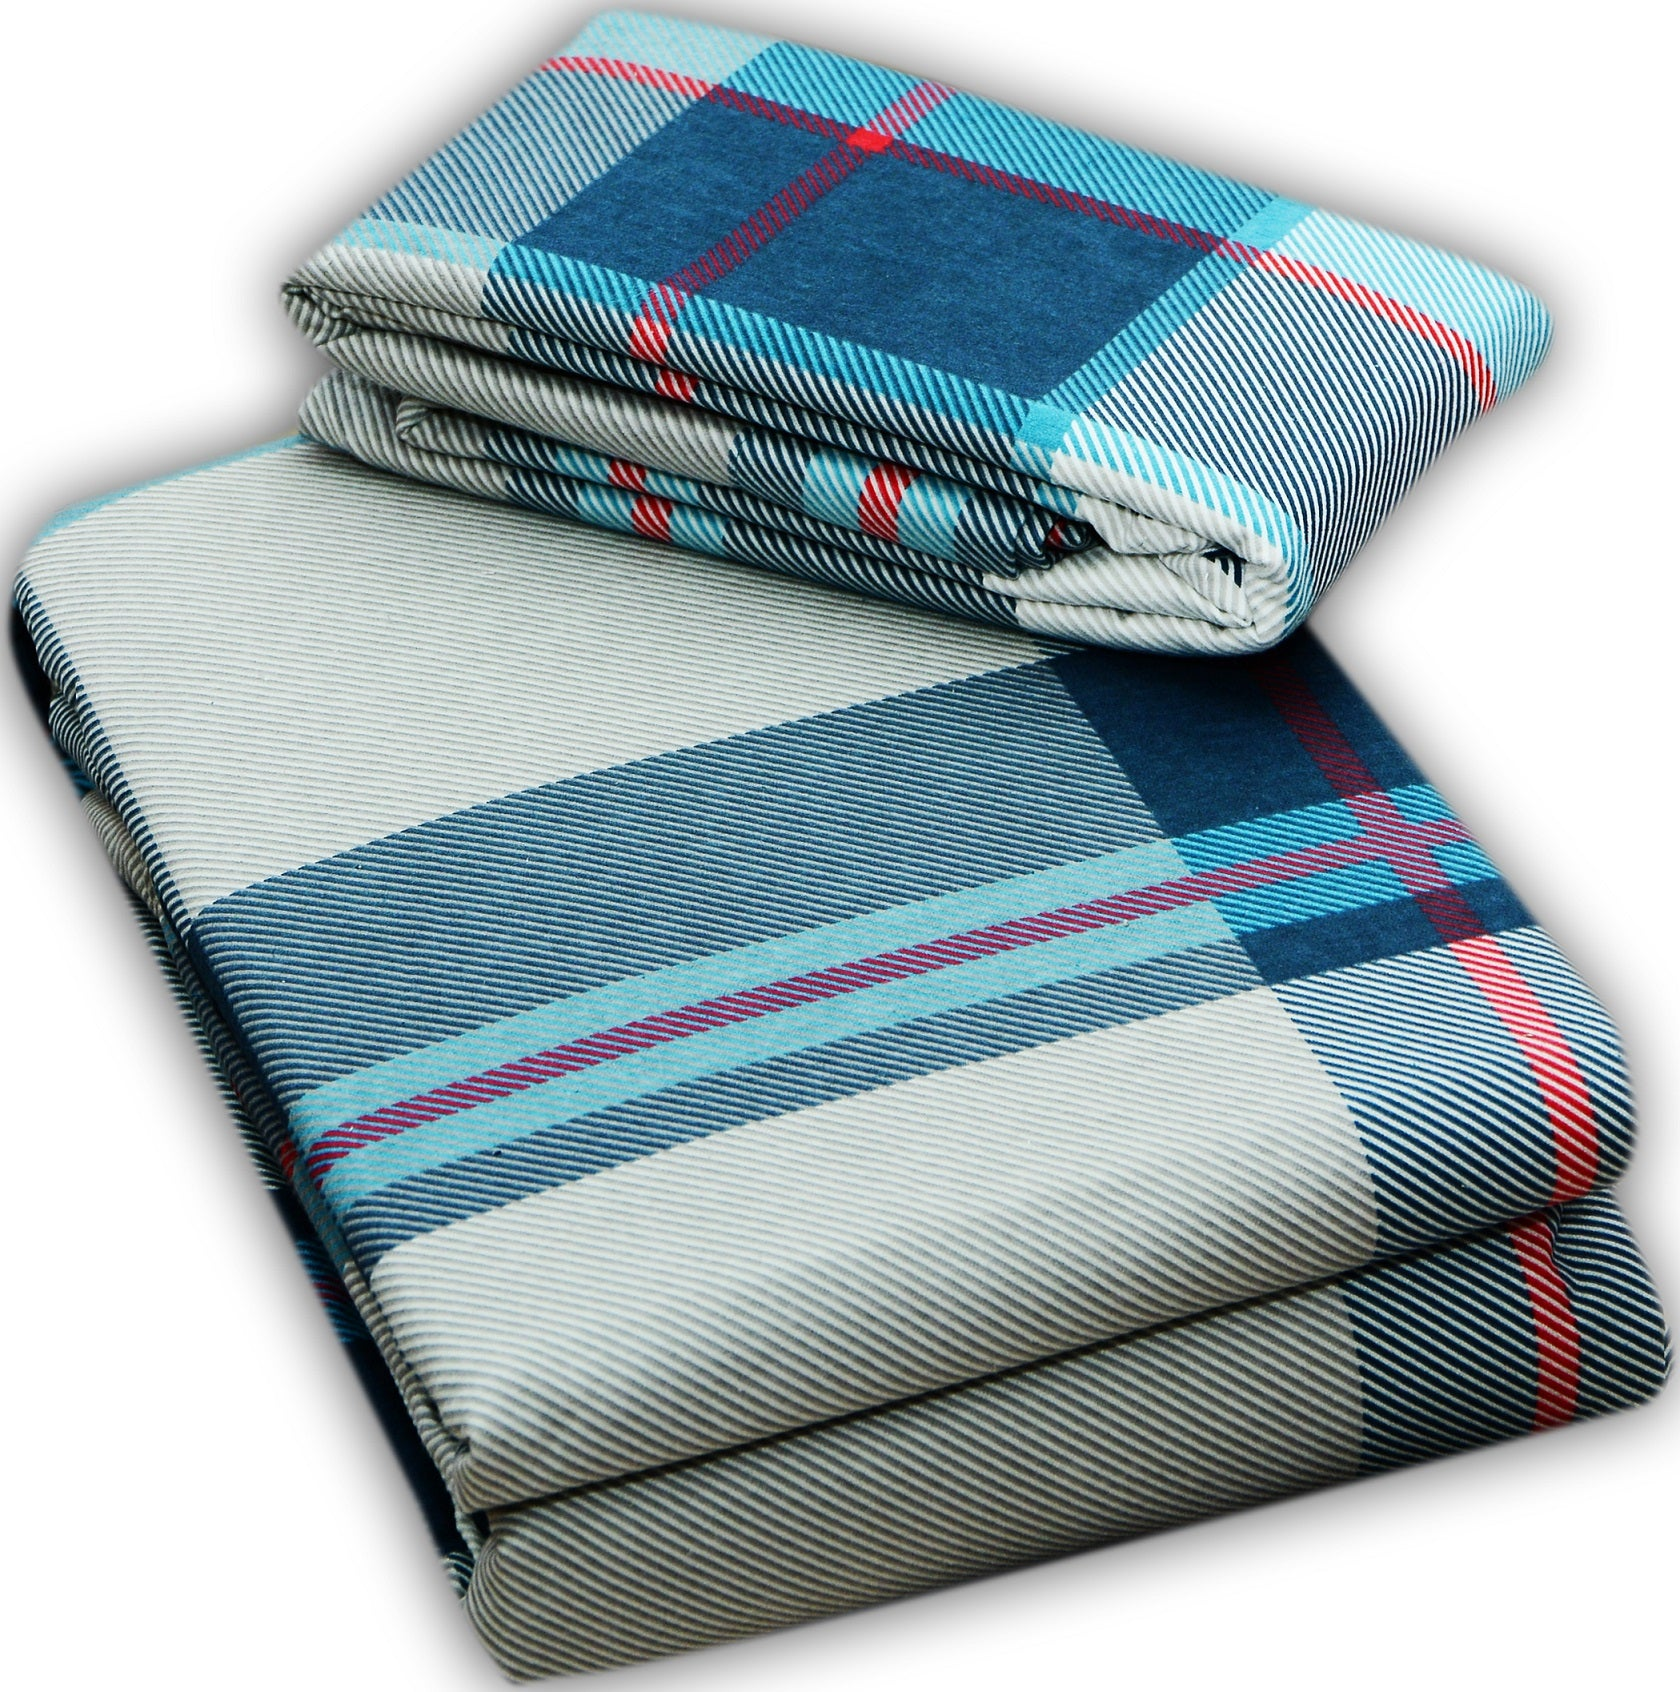 Flannel Flat Sheet - %100 Cotton, Brushed, Top Sheet -Light Blue Plaid- Queen Size